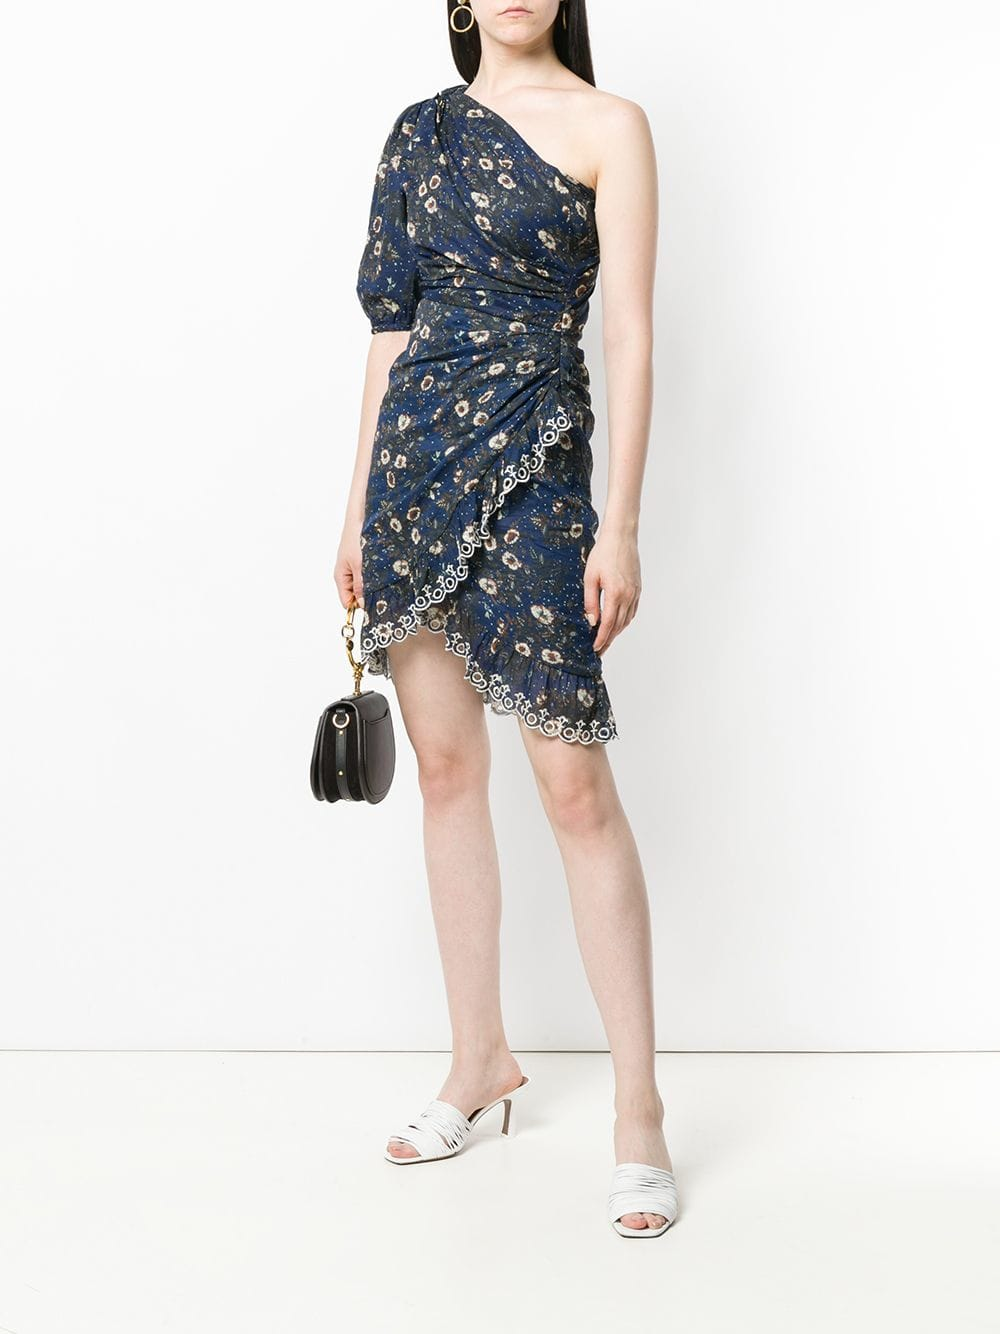 ISABEL MARANT ÉTOILE Esther One Shoulder Navy Dress